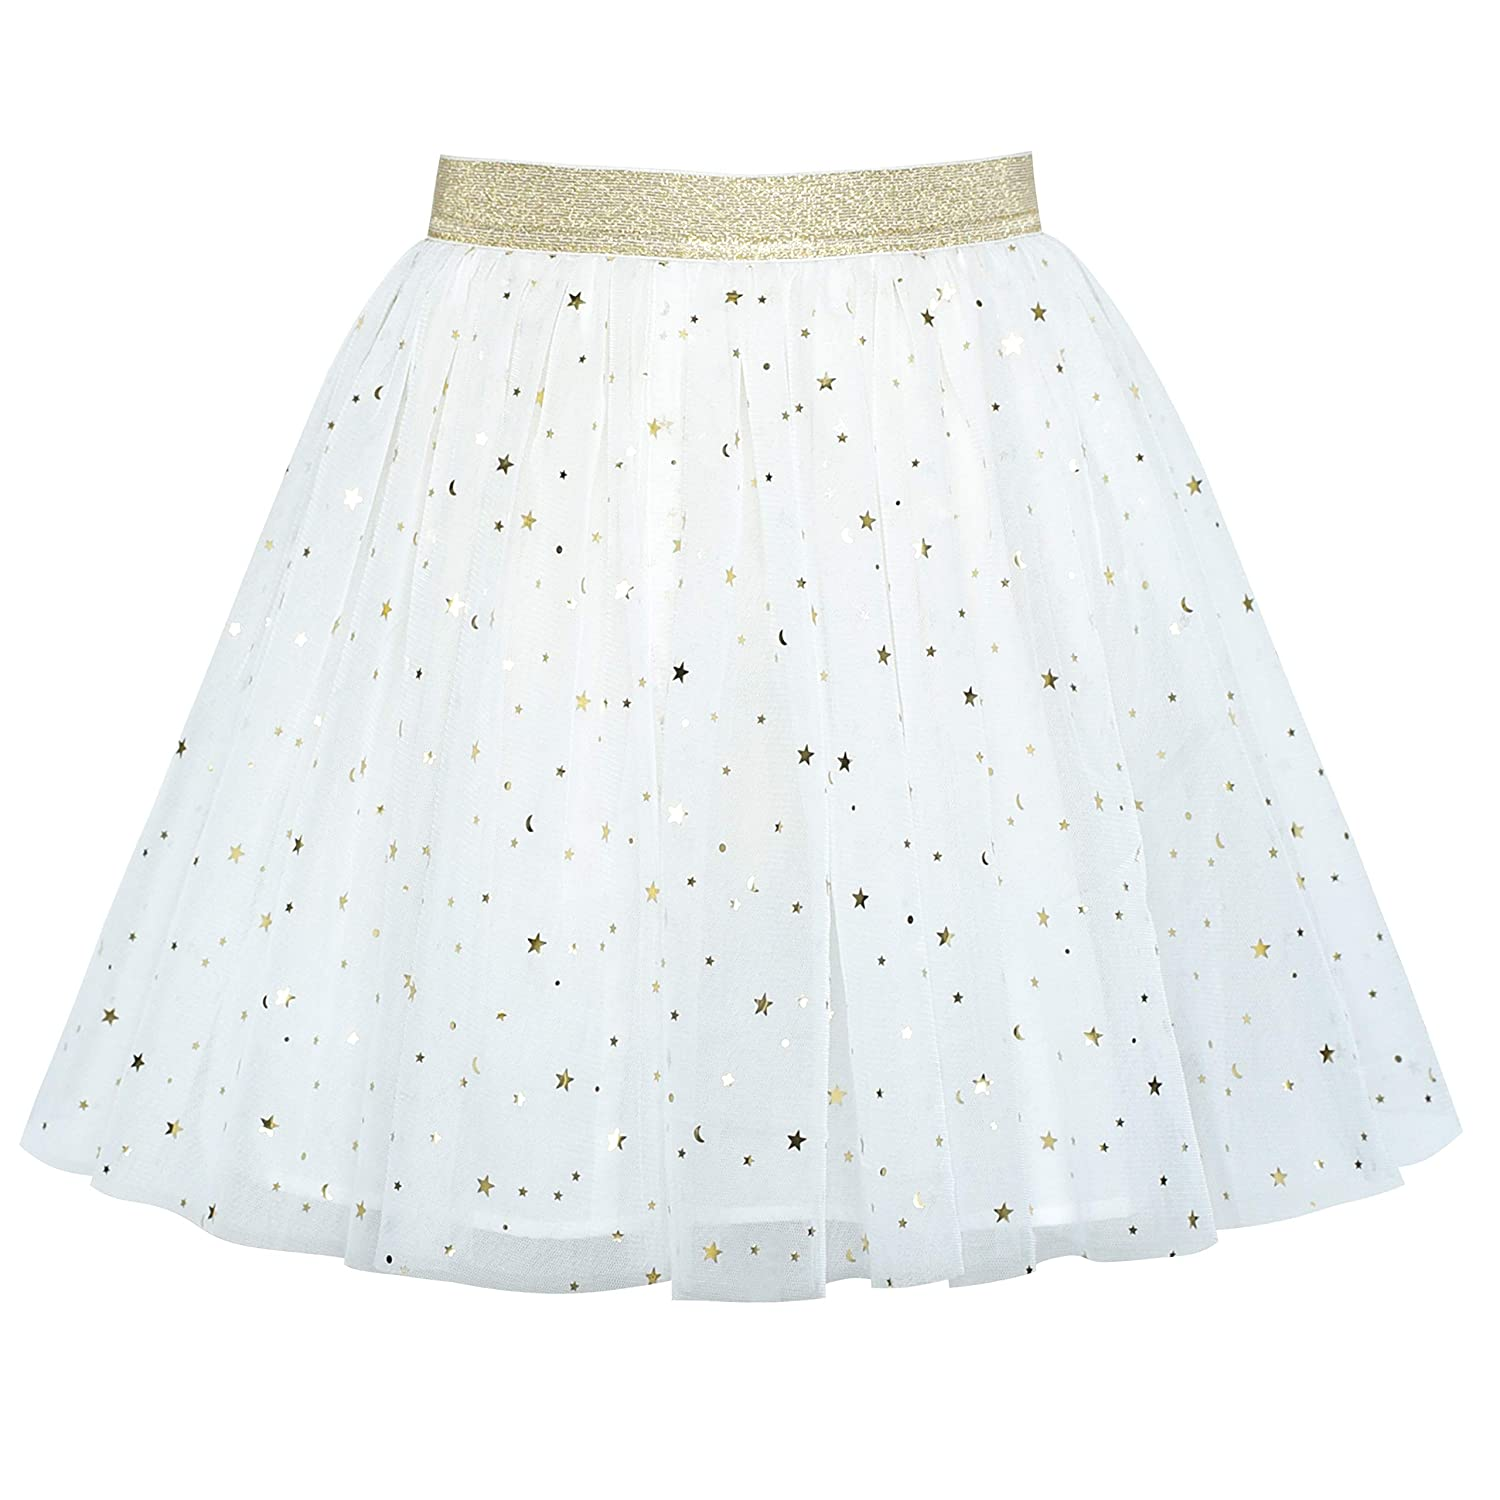 Sunny Fashion Girls Skirt Navy Blue Pearl Stars Sparkling Tutu Dancing Age 4-12 Years